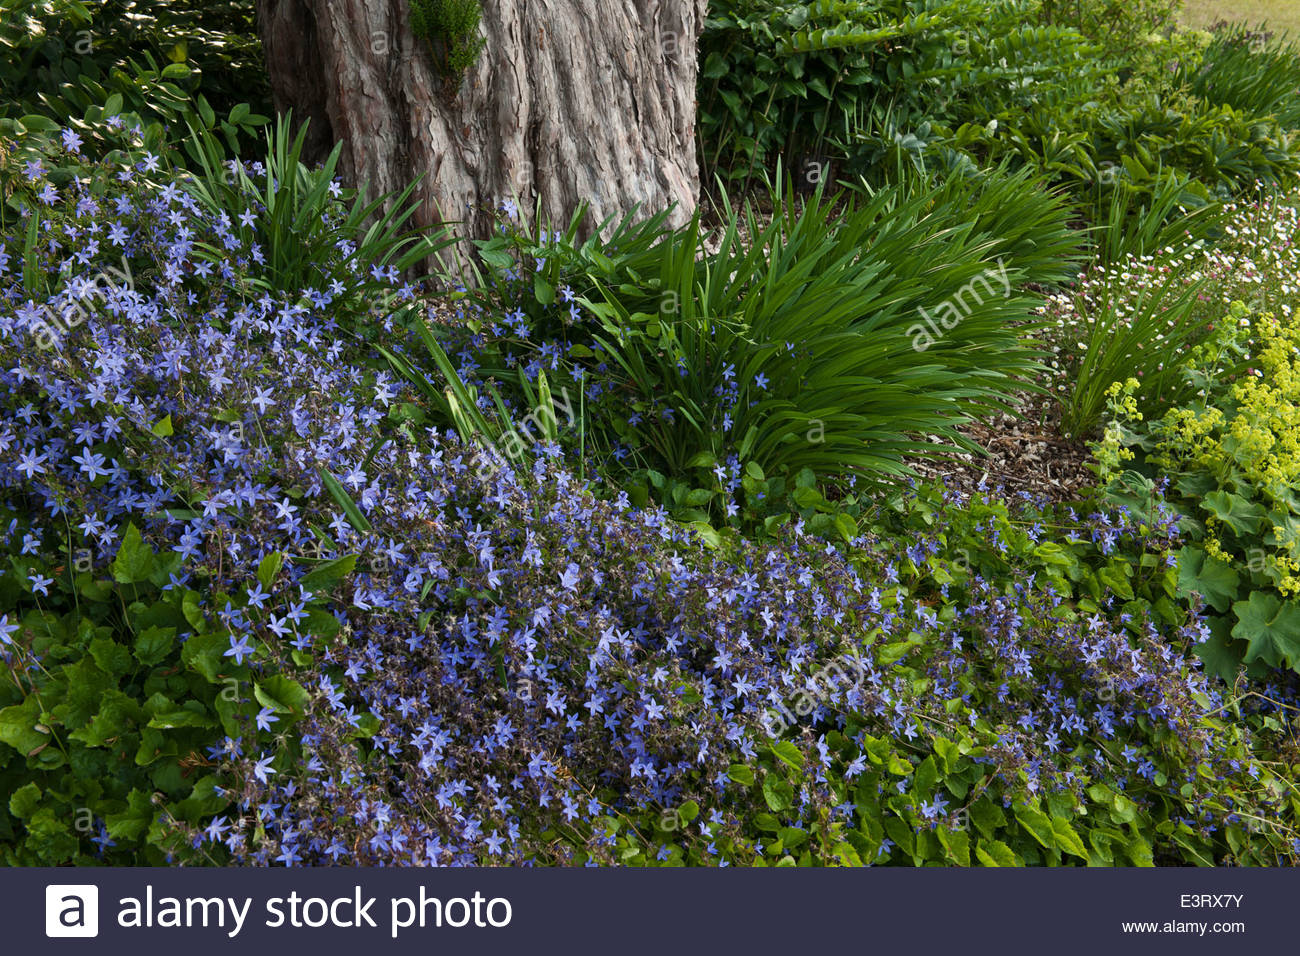 Campanula portenschlagiana wall bellflower summer flower perennial campanula portenschlagiana wall bellflower summer flower perennial blue violet june groundcover perennial blooms blossoms flower mightylinksfo